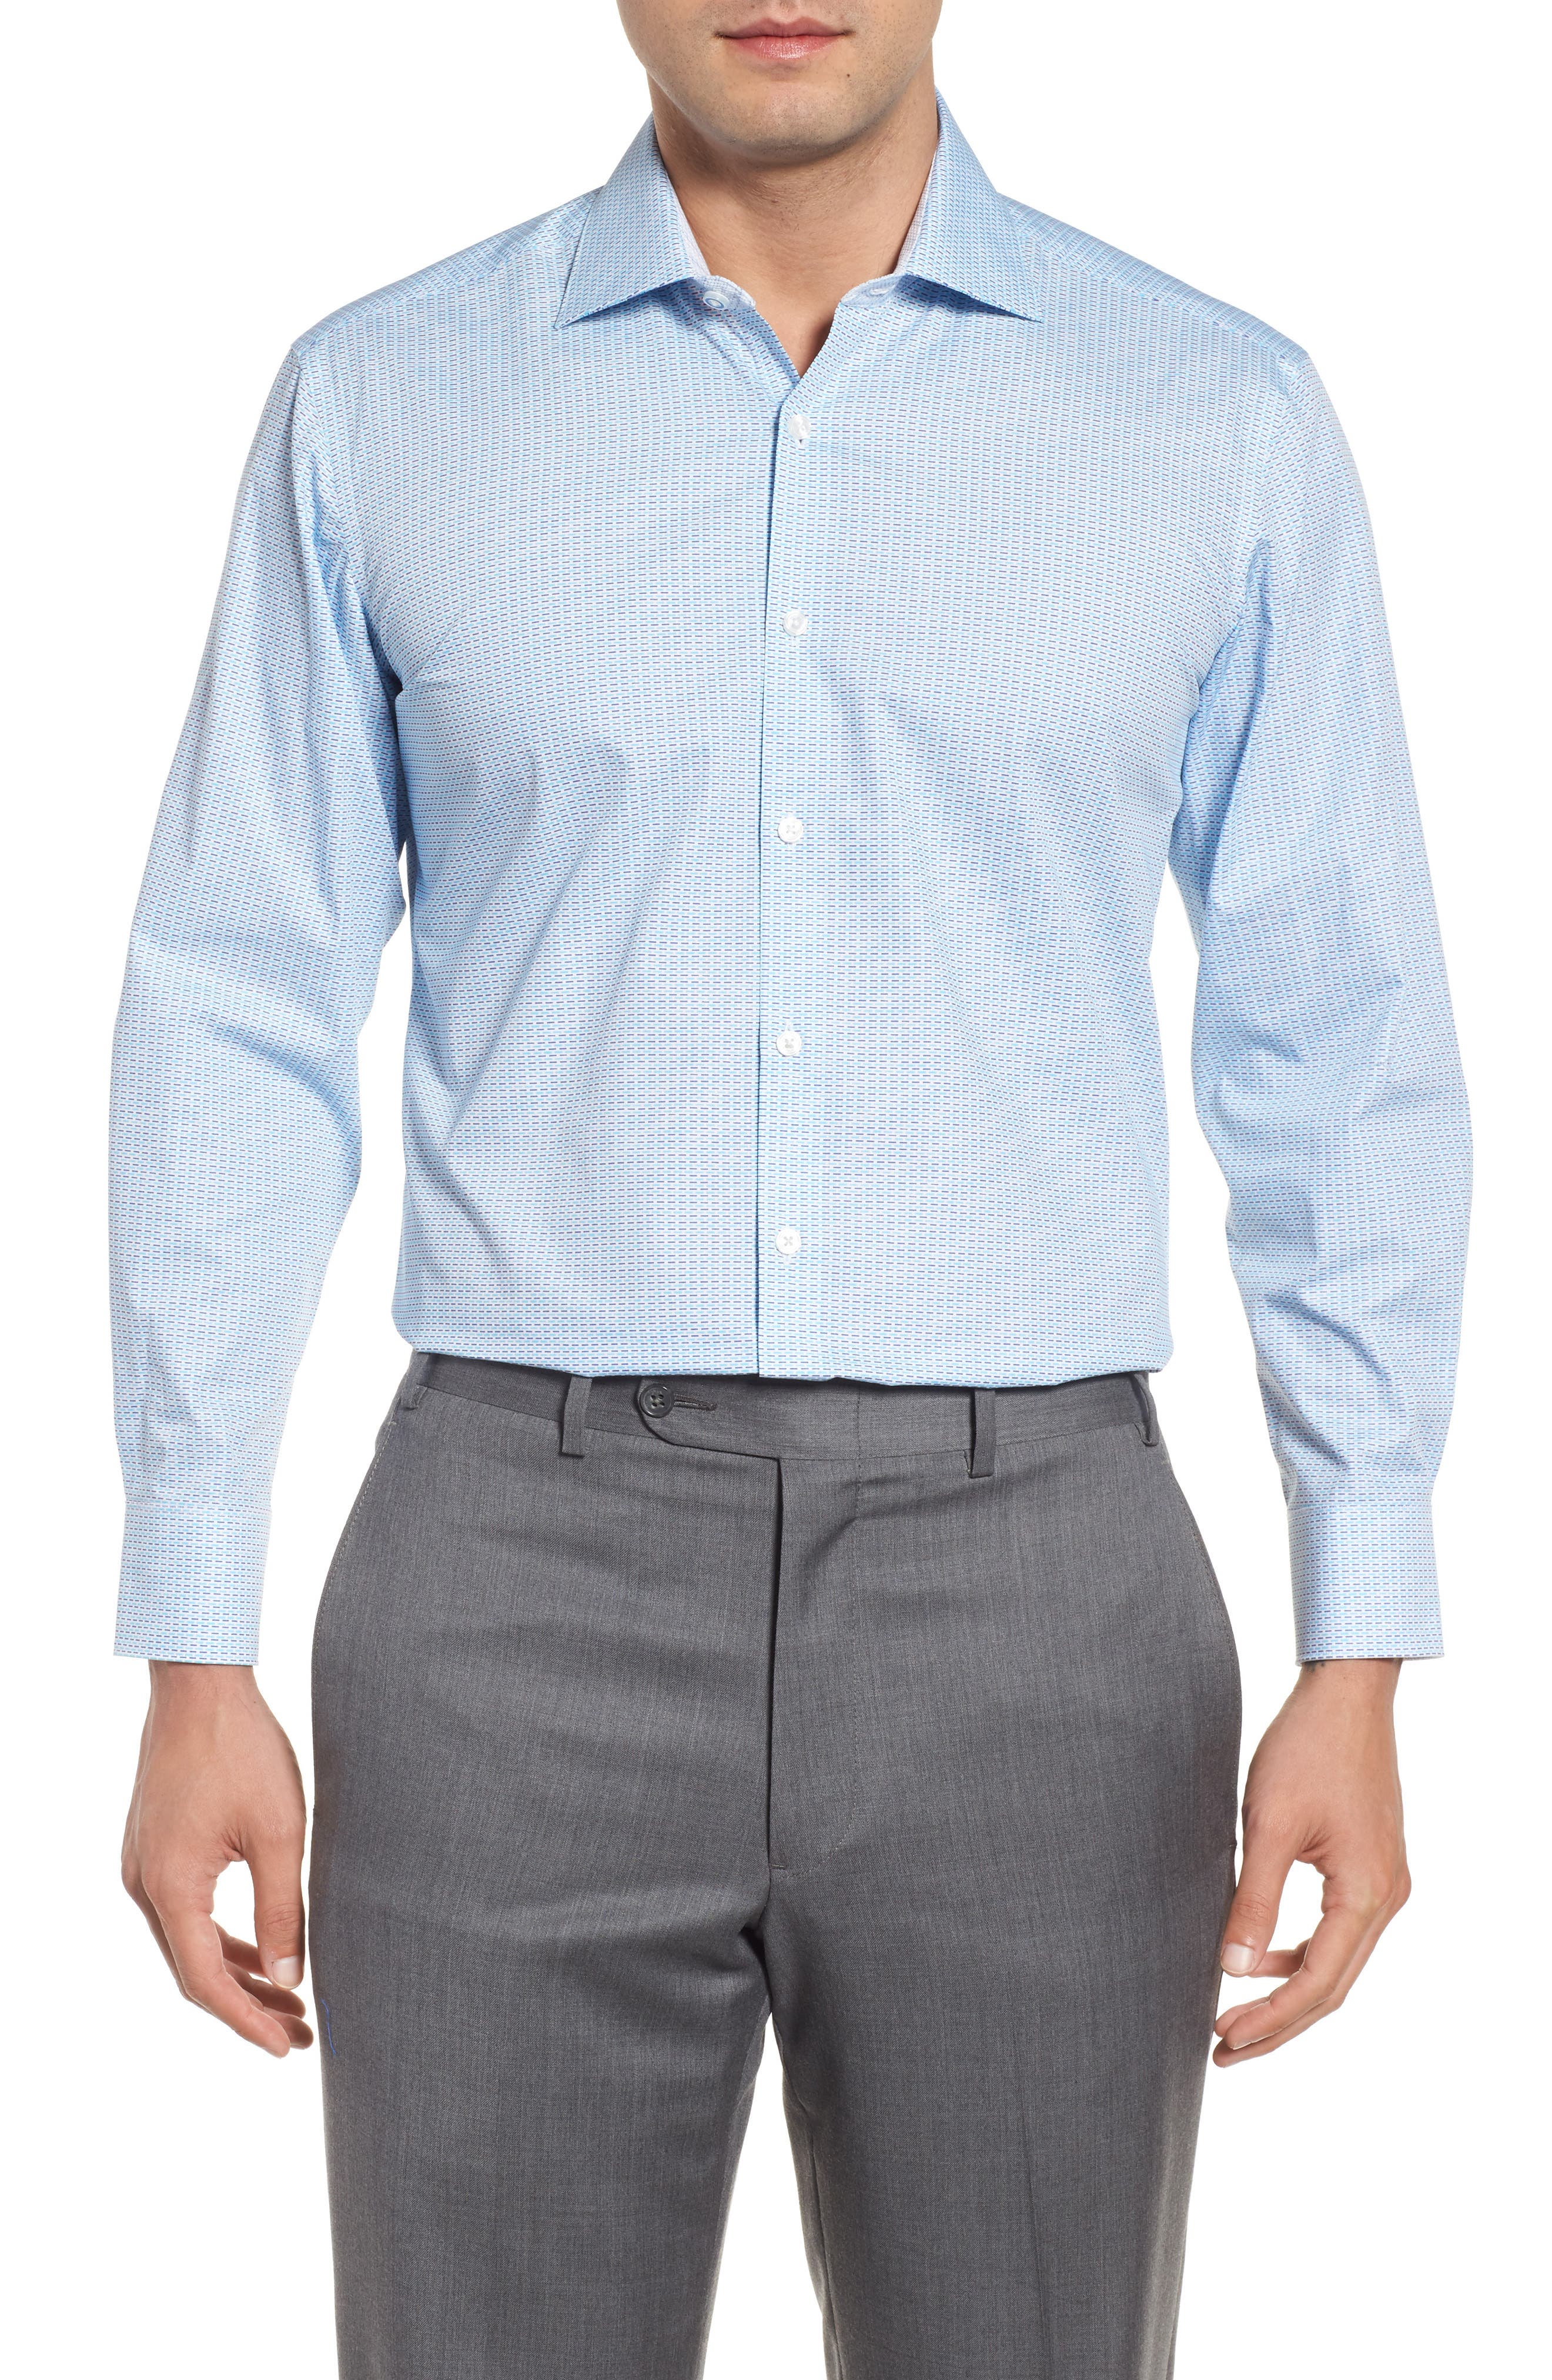 Trim Fit Geometric Dress Shirt,                             Main thumbnail 1, color,                             465